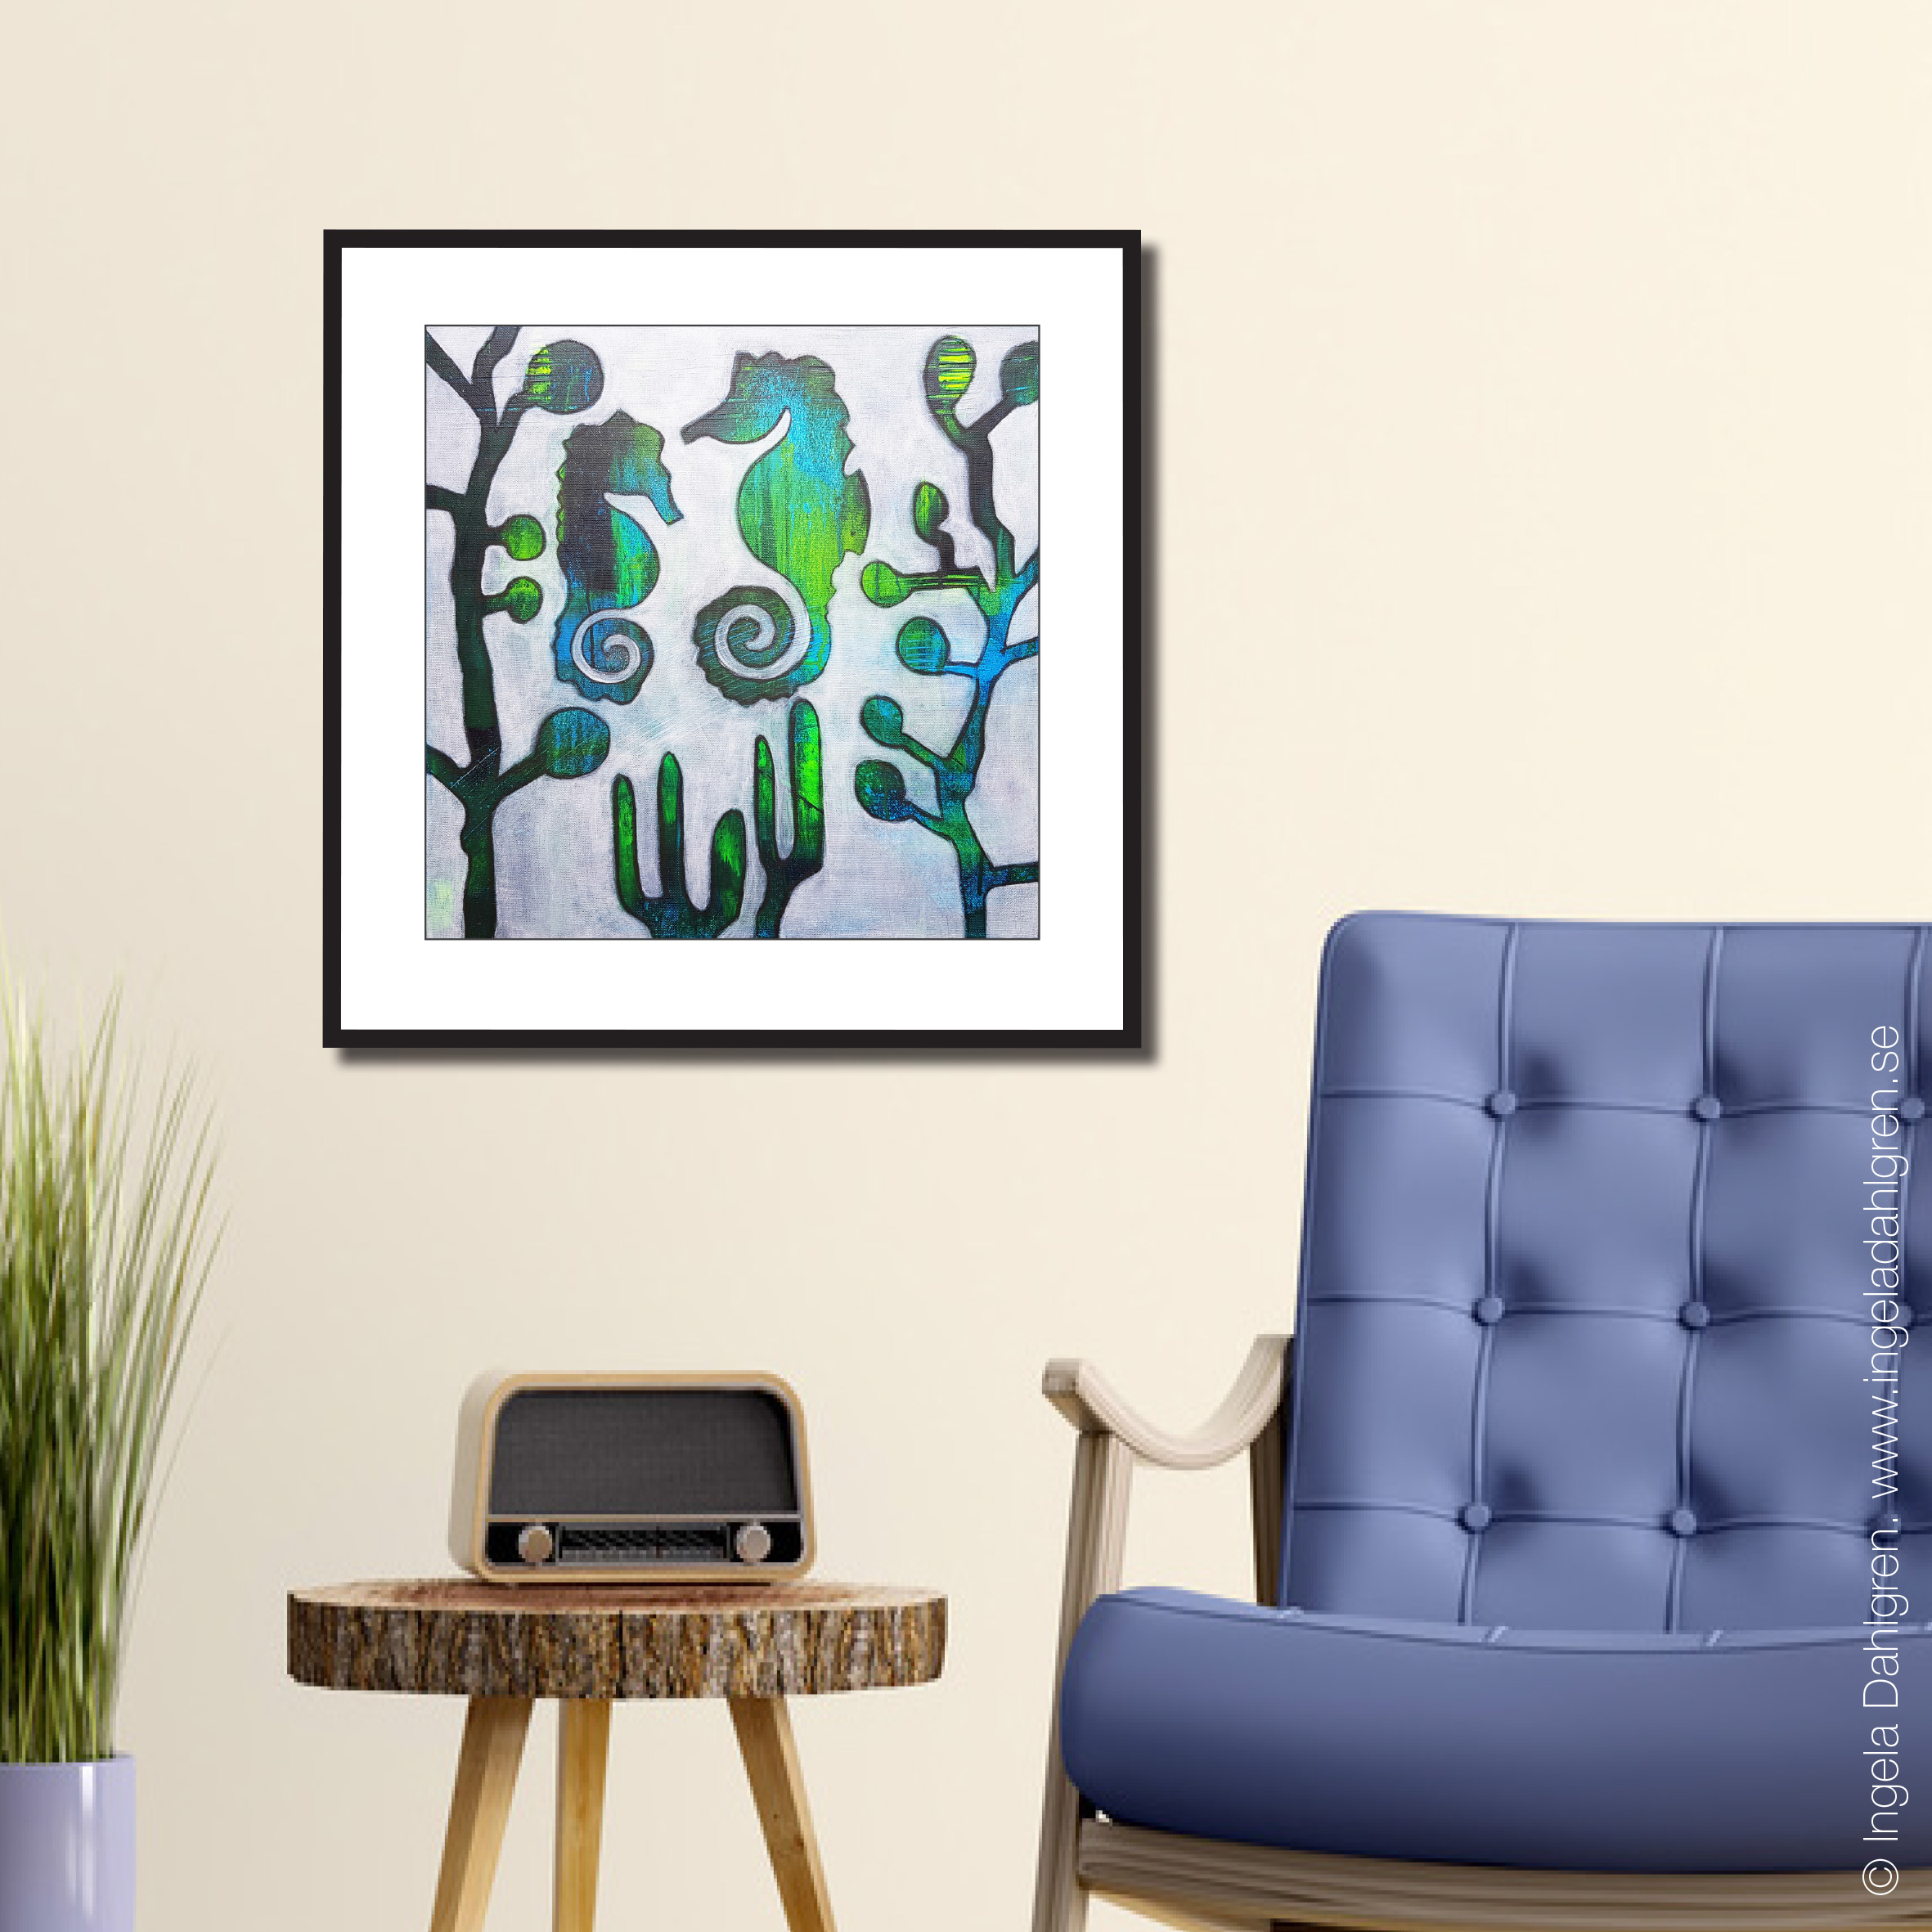 Mindful - Art print